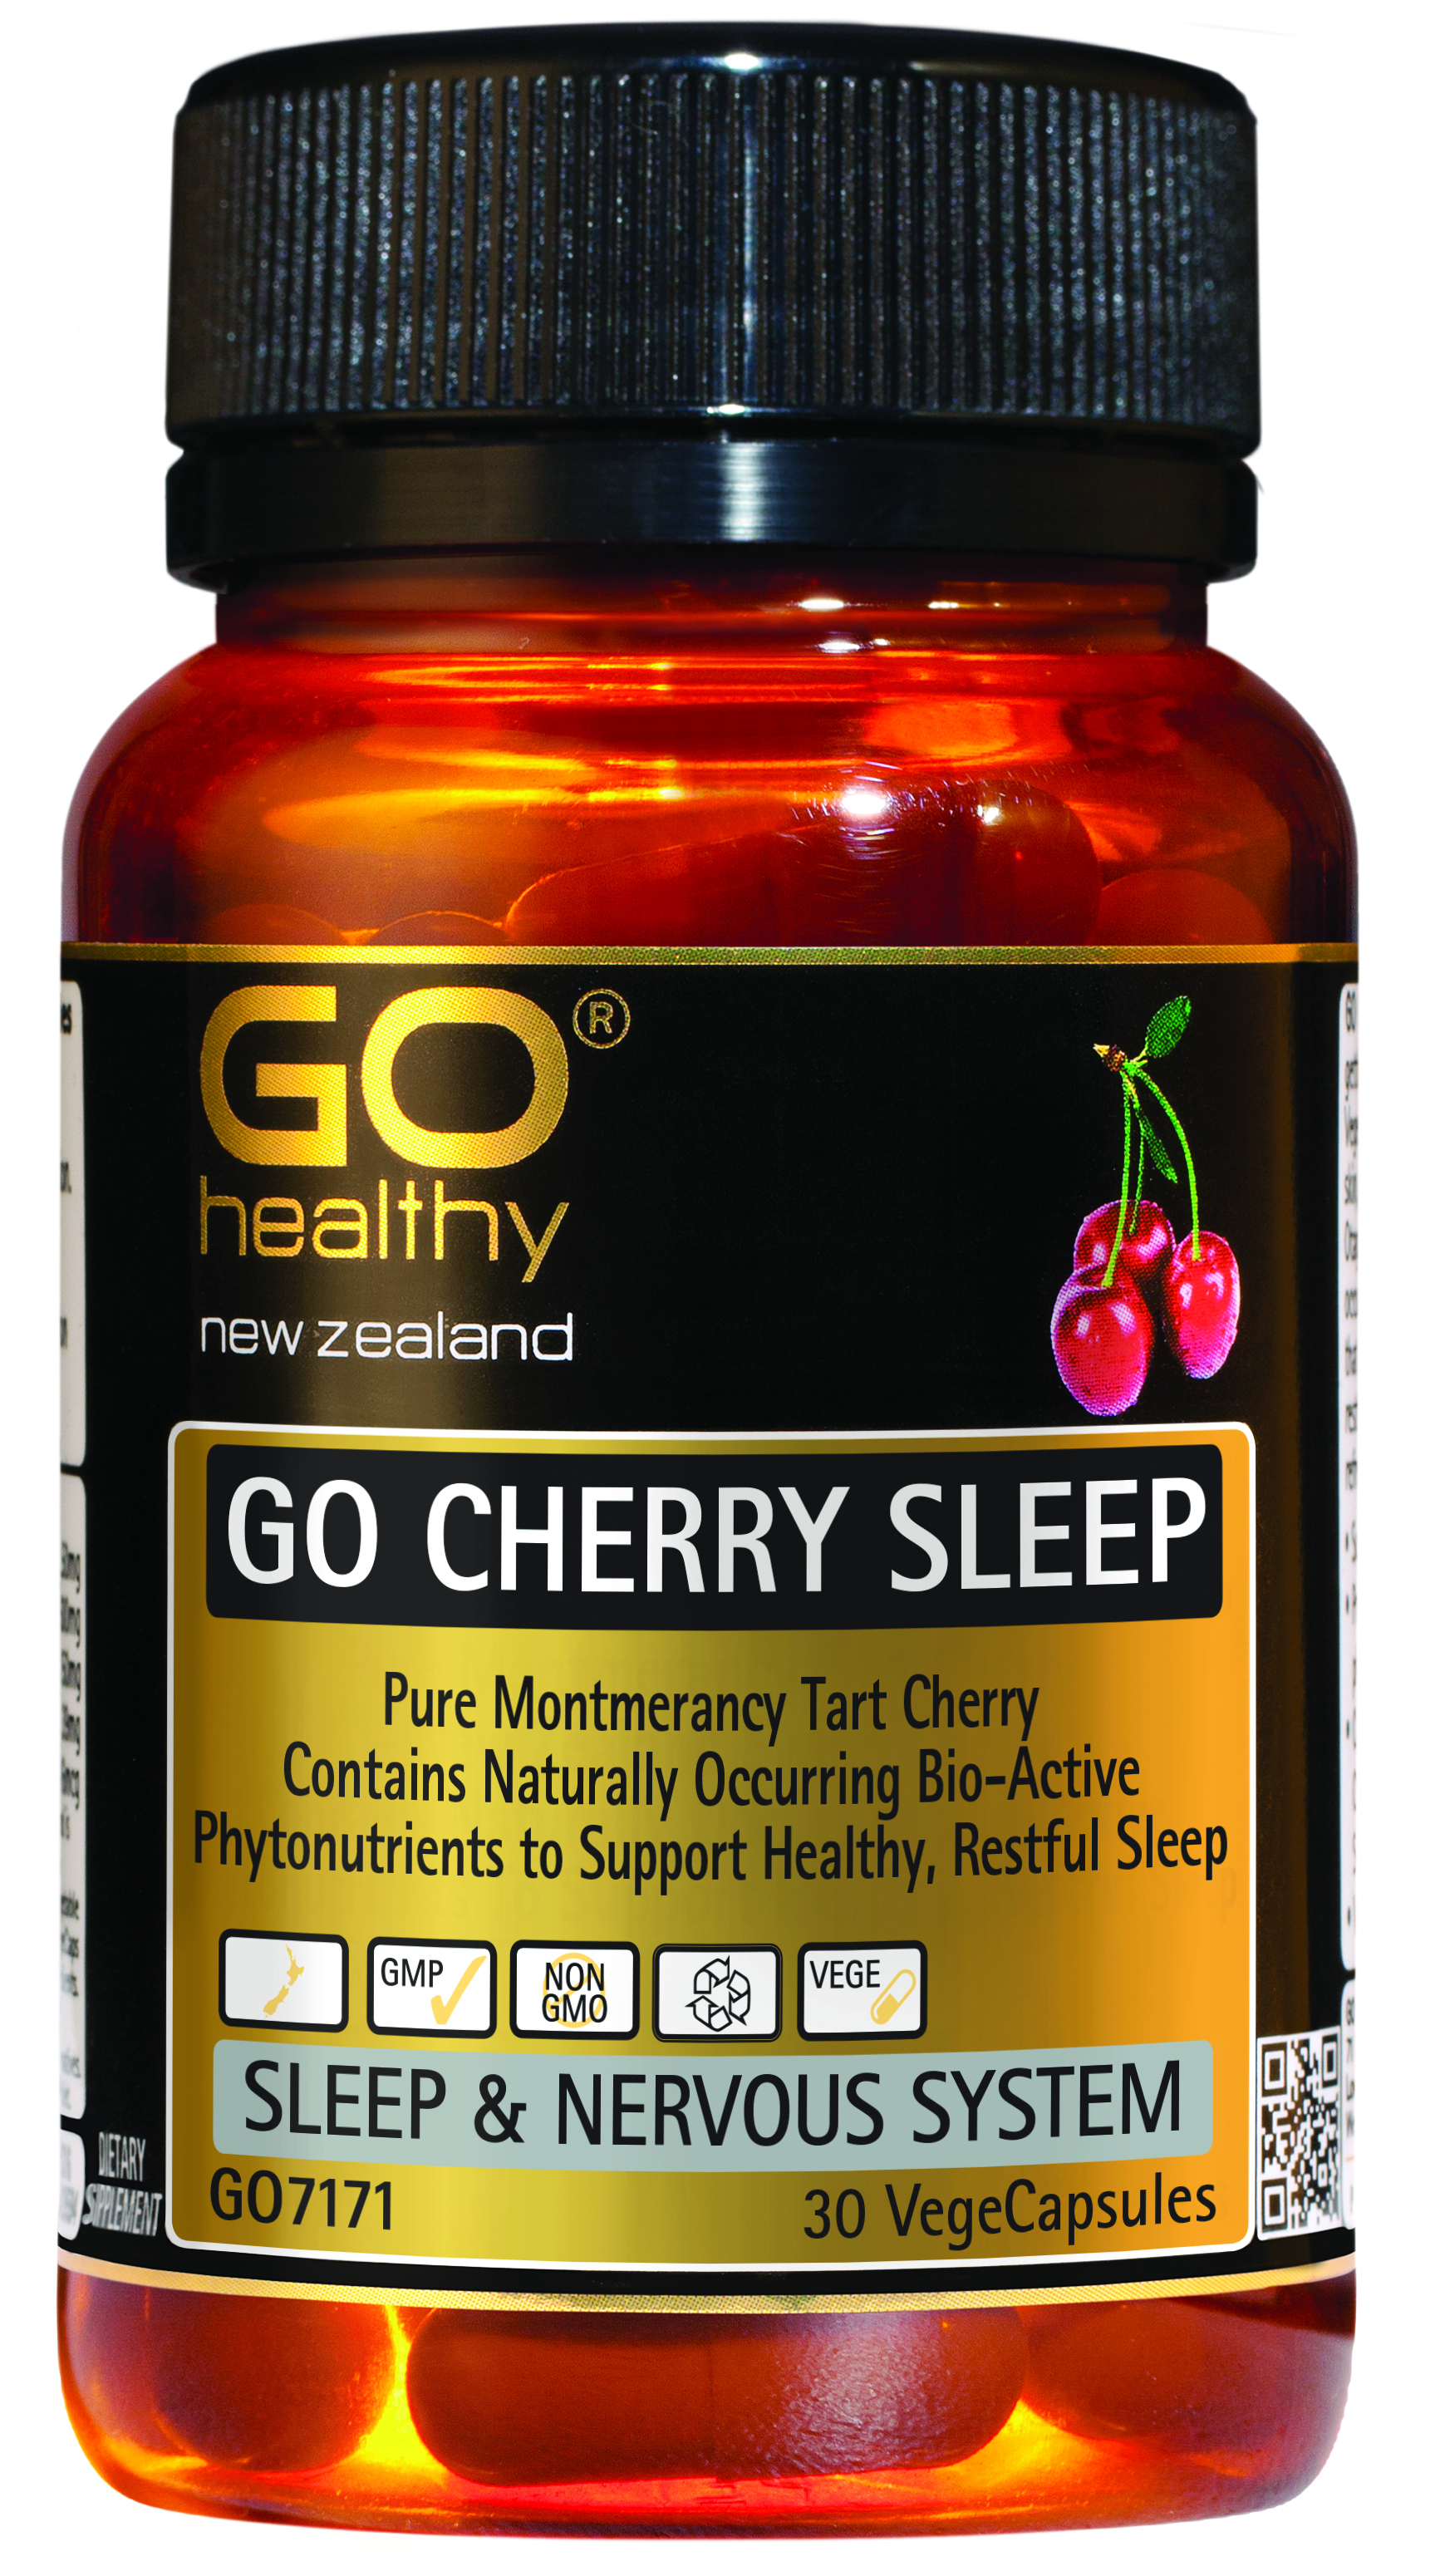 Go Healthy Cherry Sleep 30 Vege Capsules